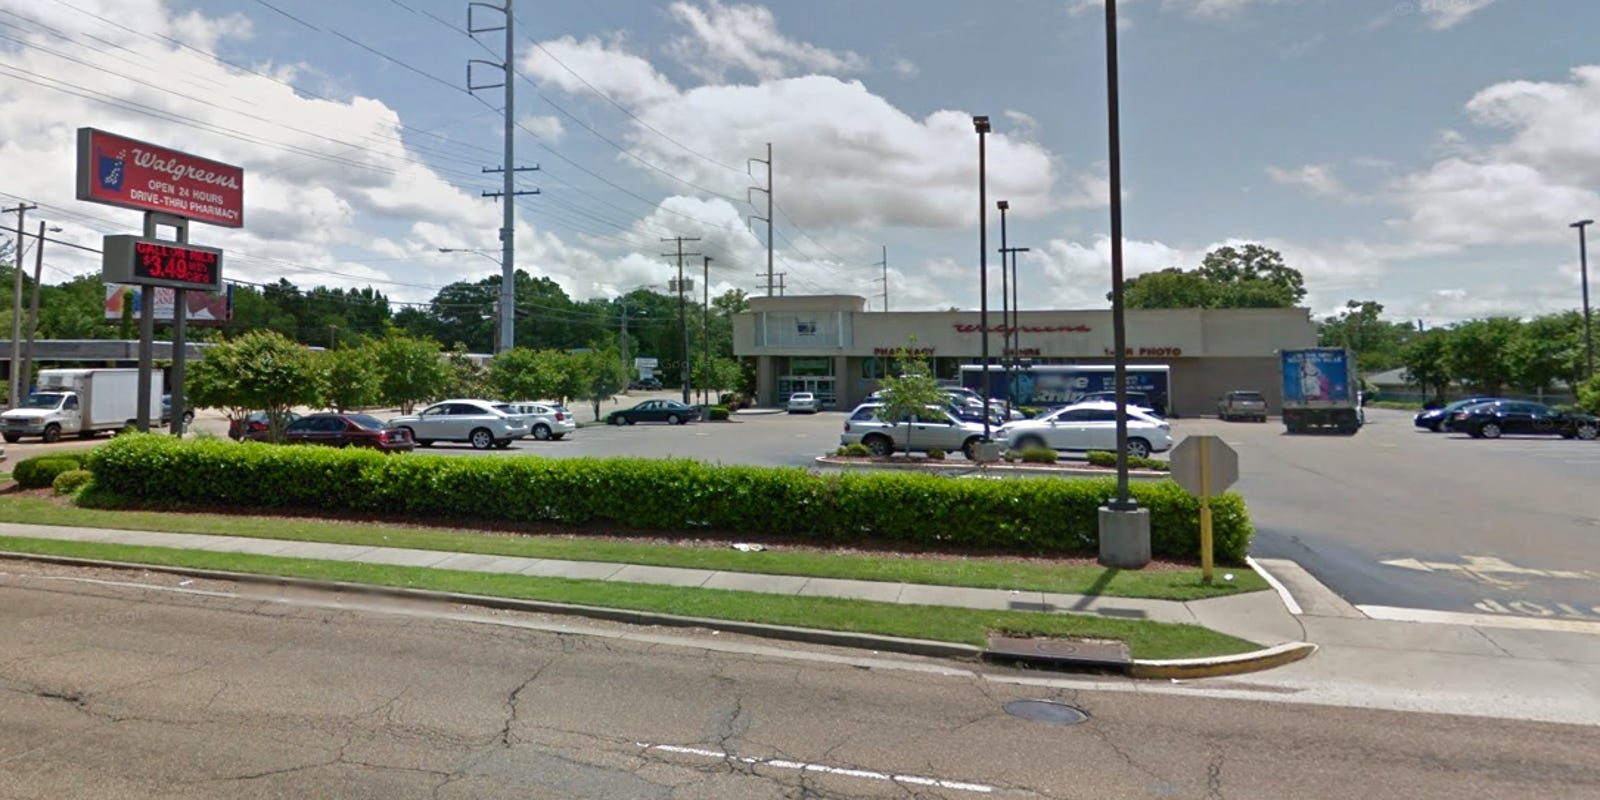 Walgreens sued over safety of parking lot